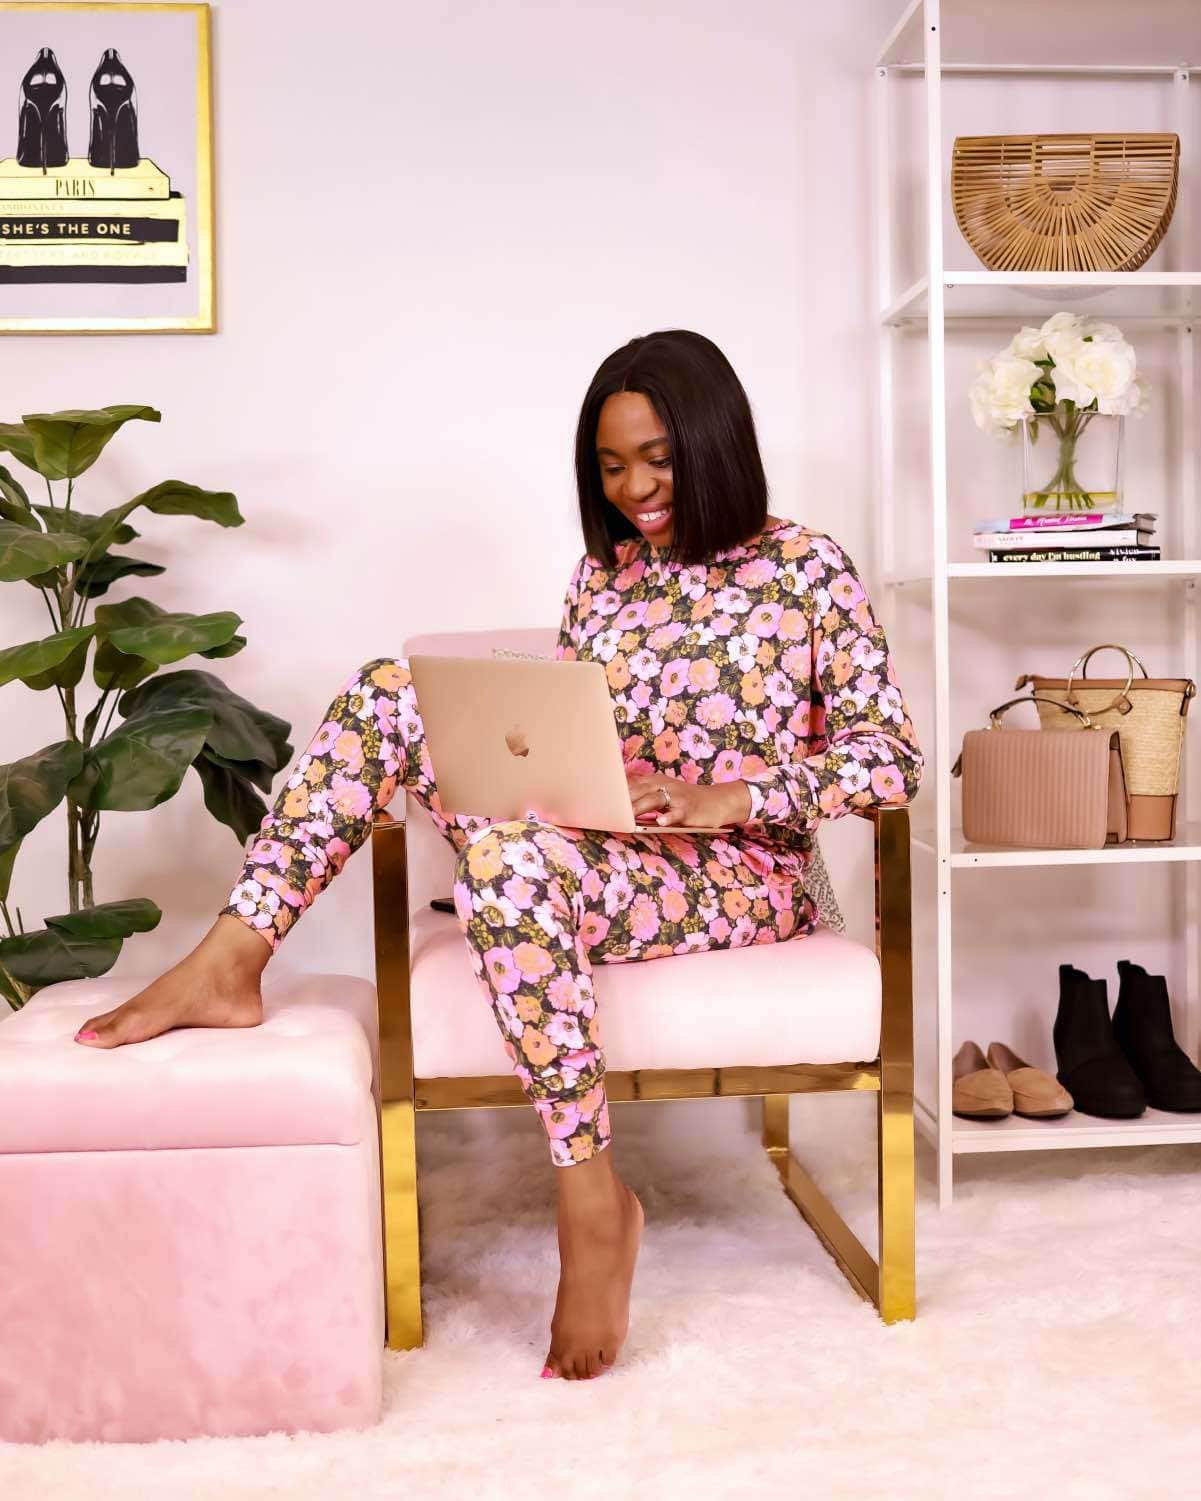 Loungewear has redefined the way we look at transitional pieces you can lounge and wear outside the house. But they are sometimes mistaken for sleepwear. This is a closer look at comfy, cozy, and chic loungewear you can wear outside the house.